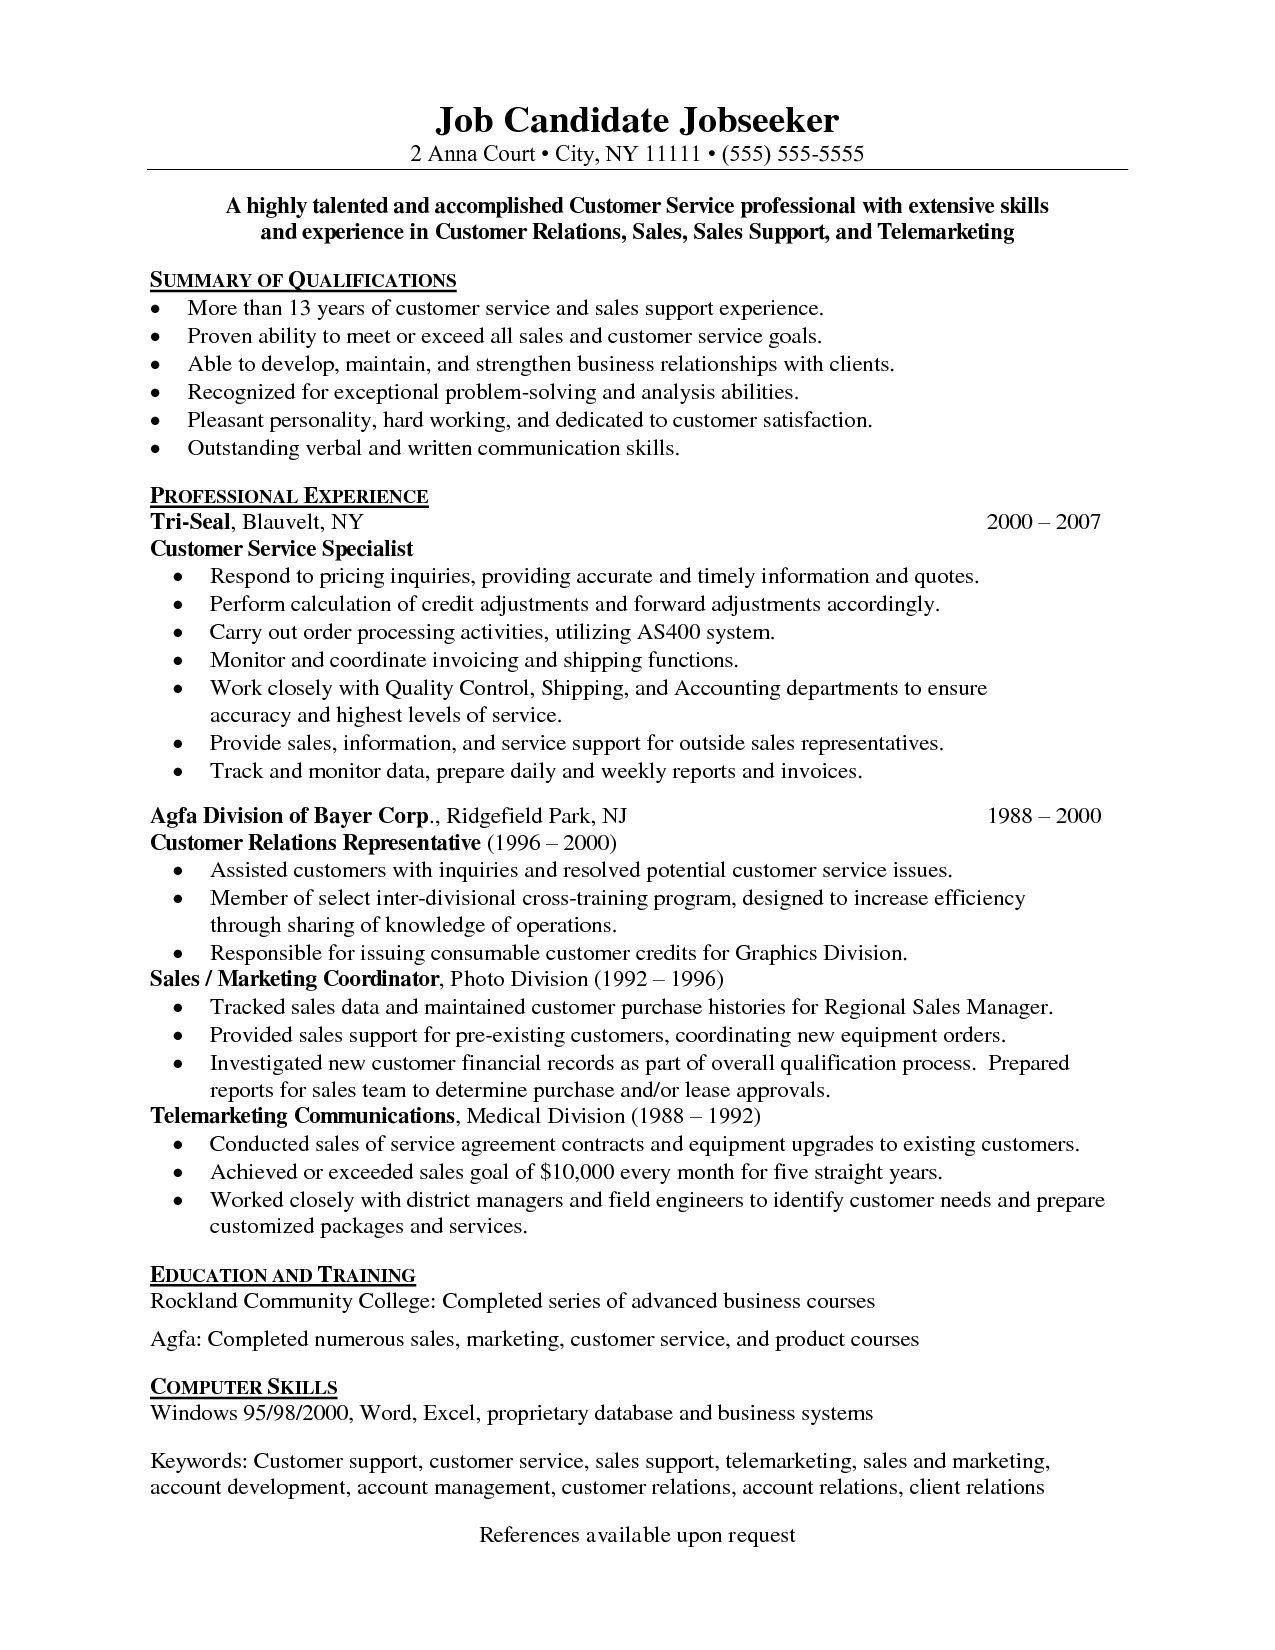 Resume Objectives For Customer Service Best Resume Objective